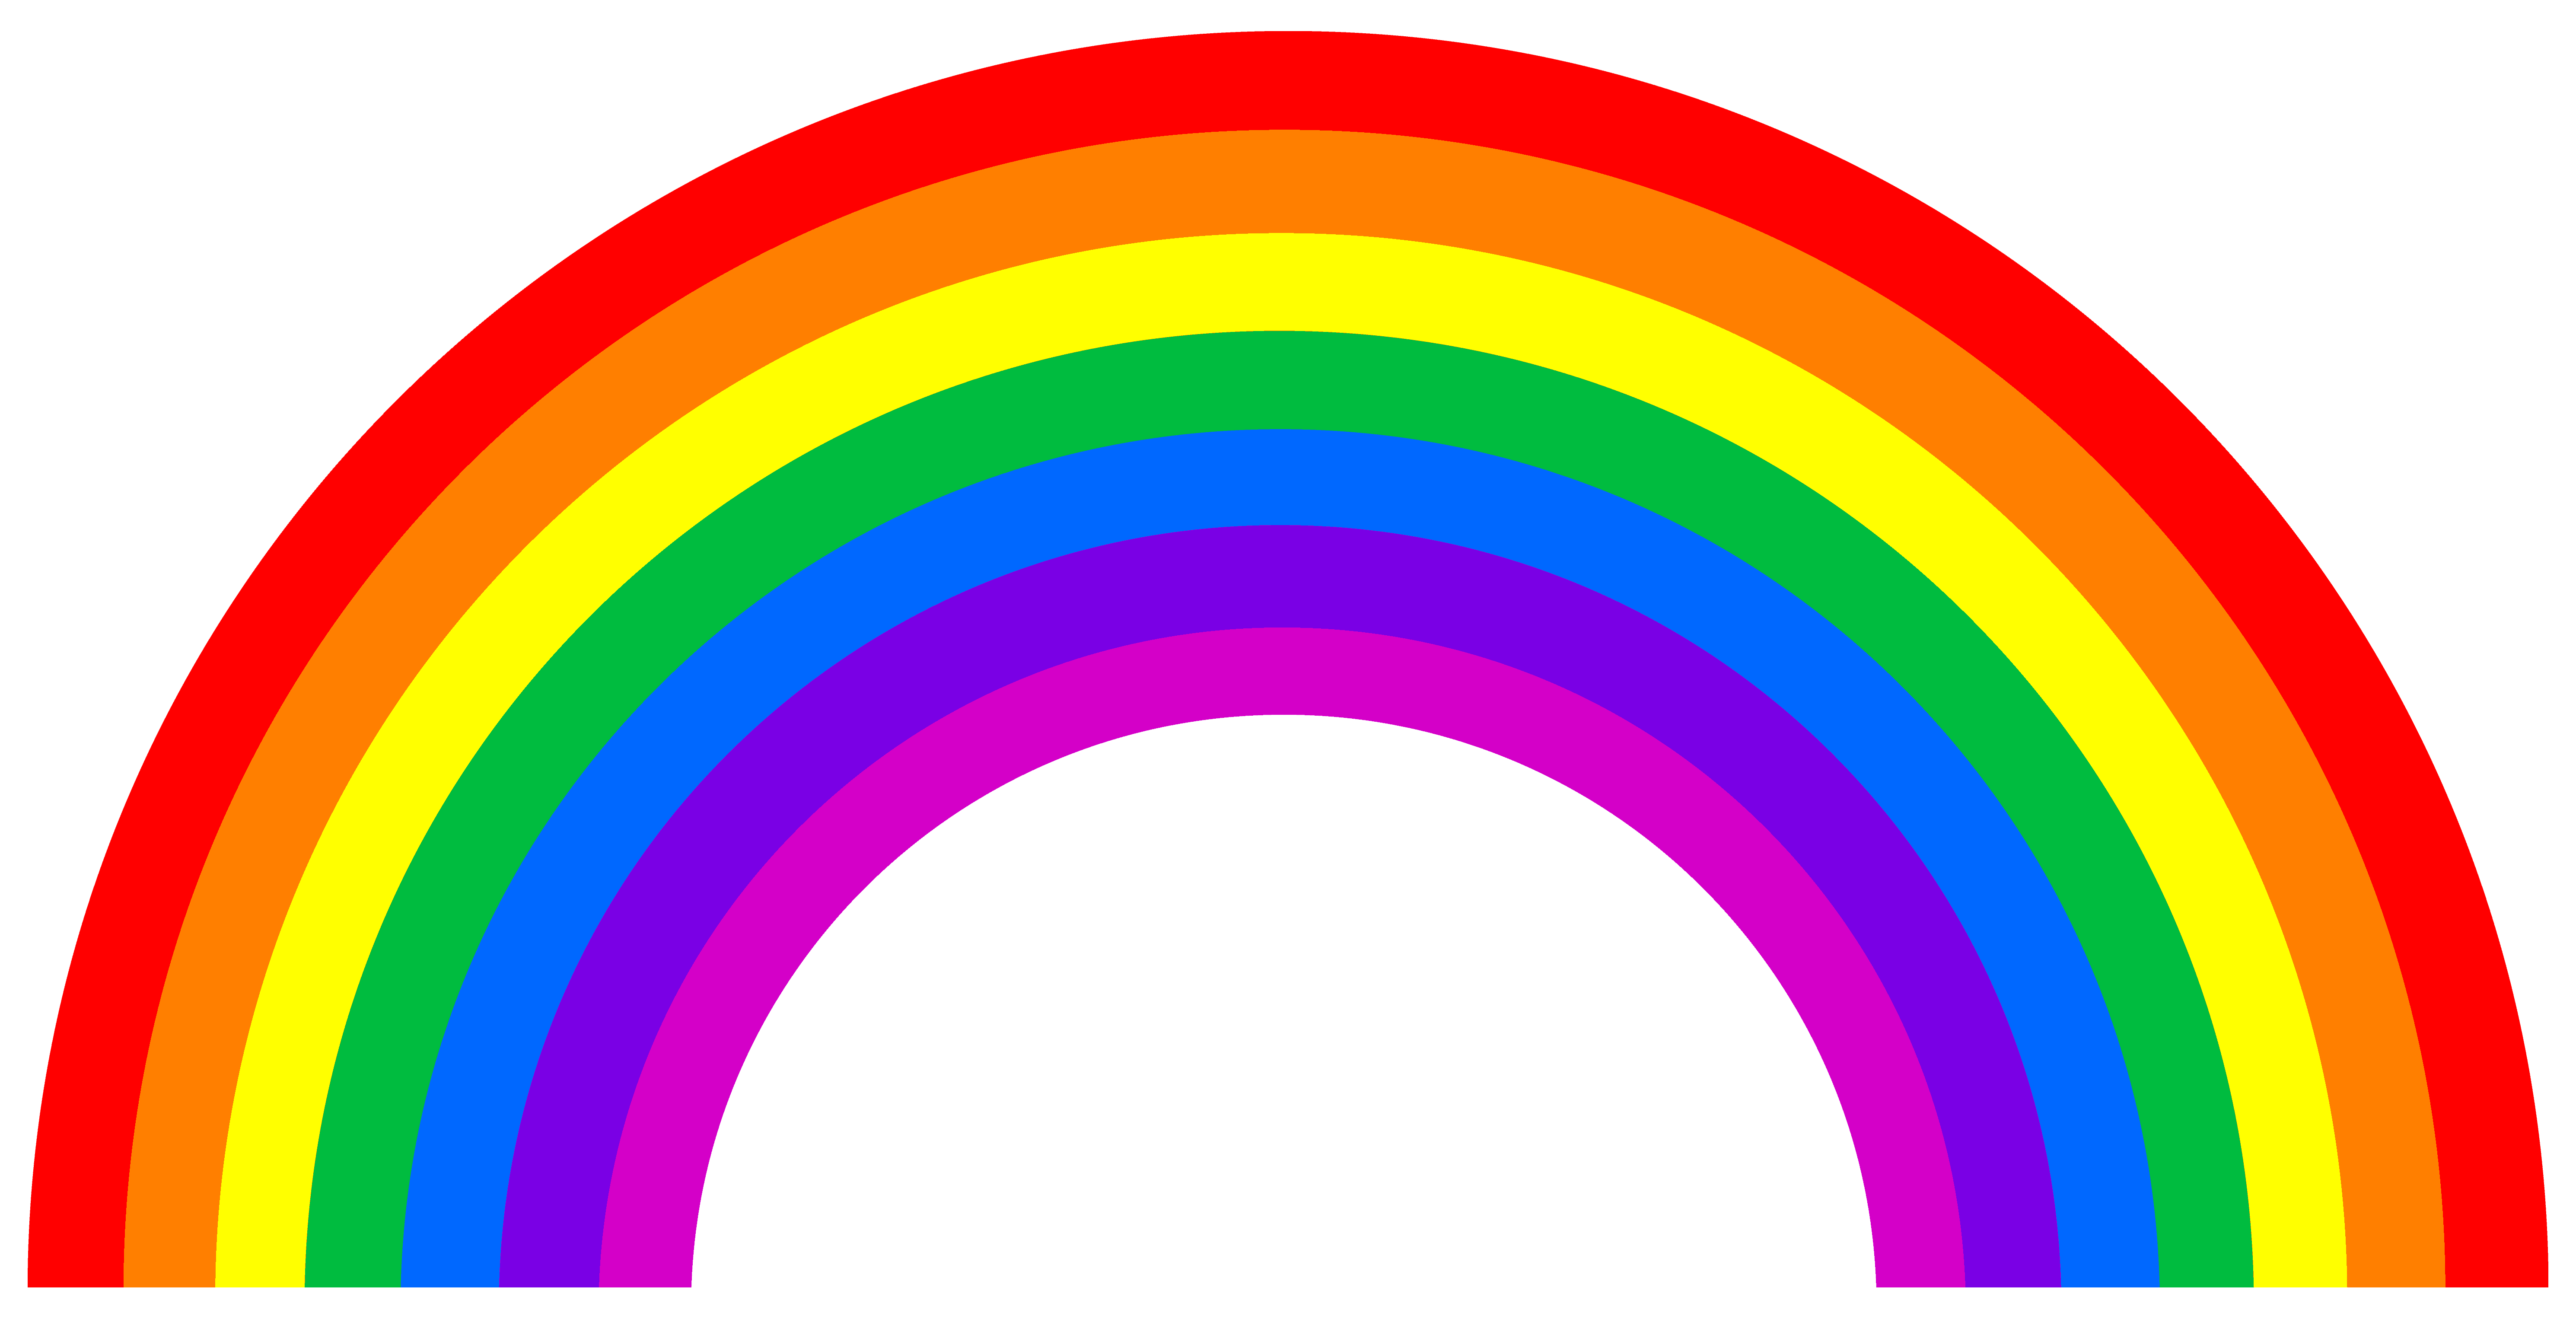 Rainbow Images - Reverse Search Rainbow